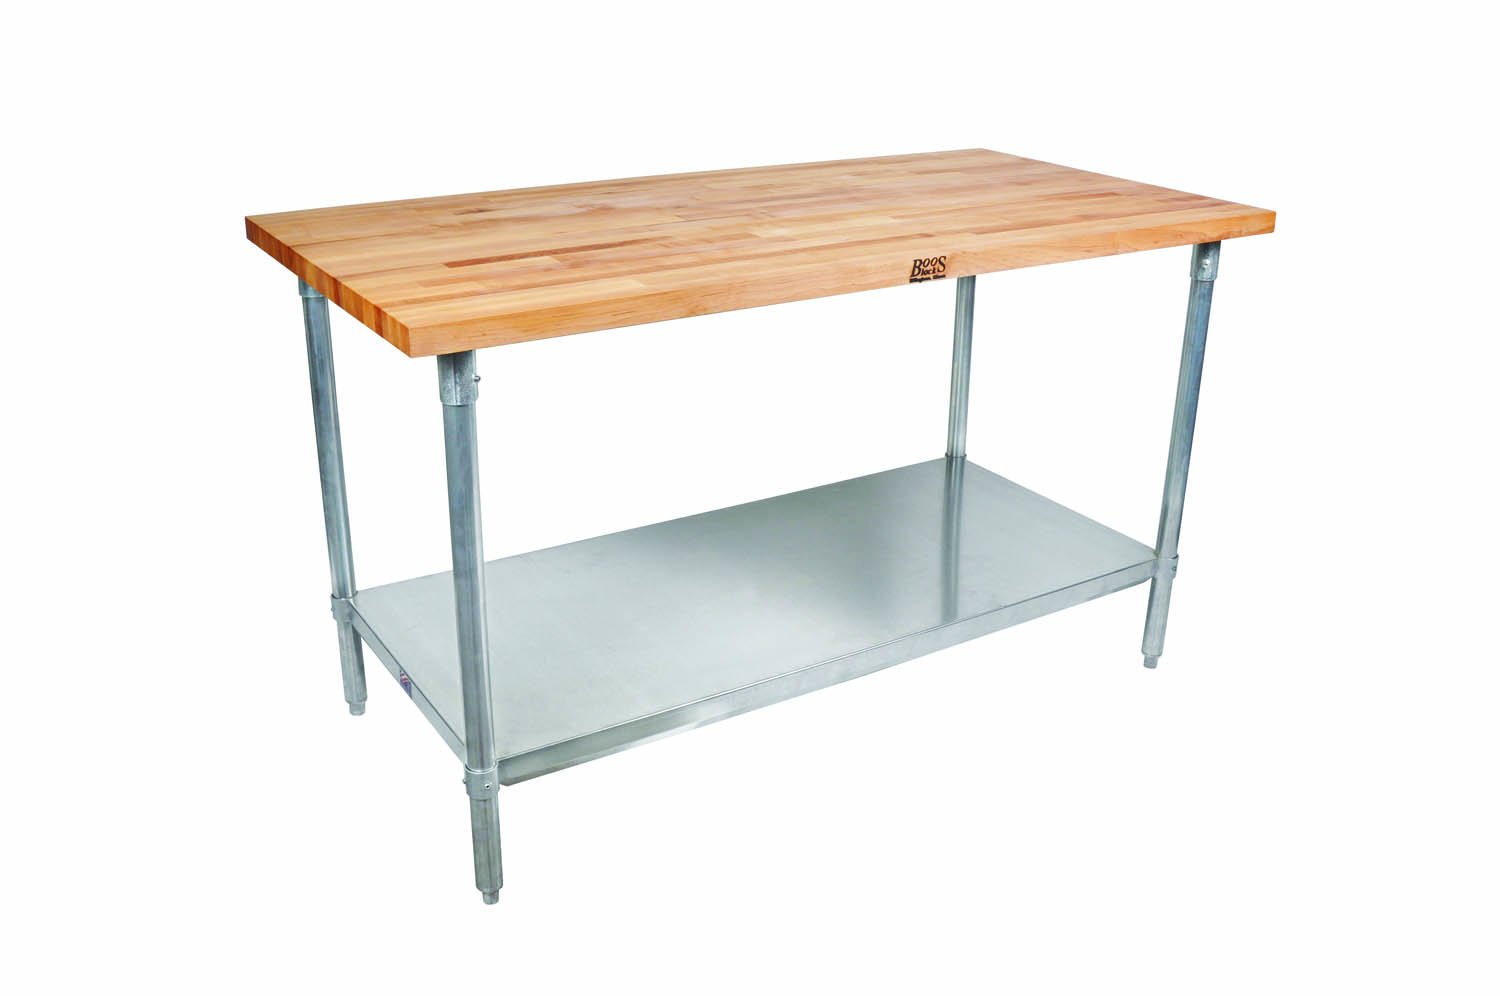 Amazon John Boos JNS01 Maple Top Work Table with Galvanized